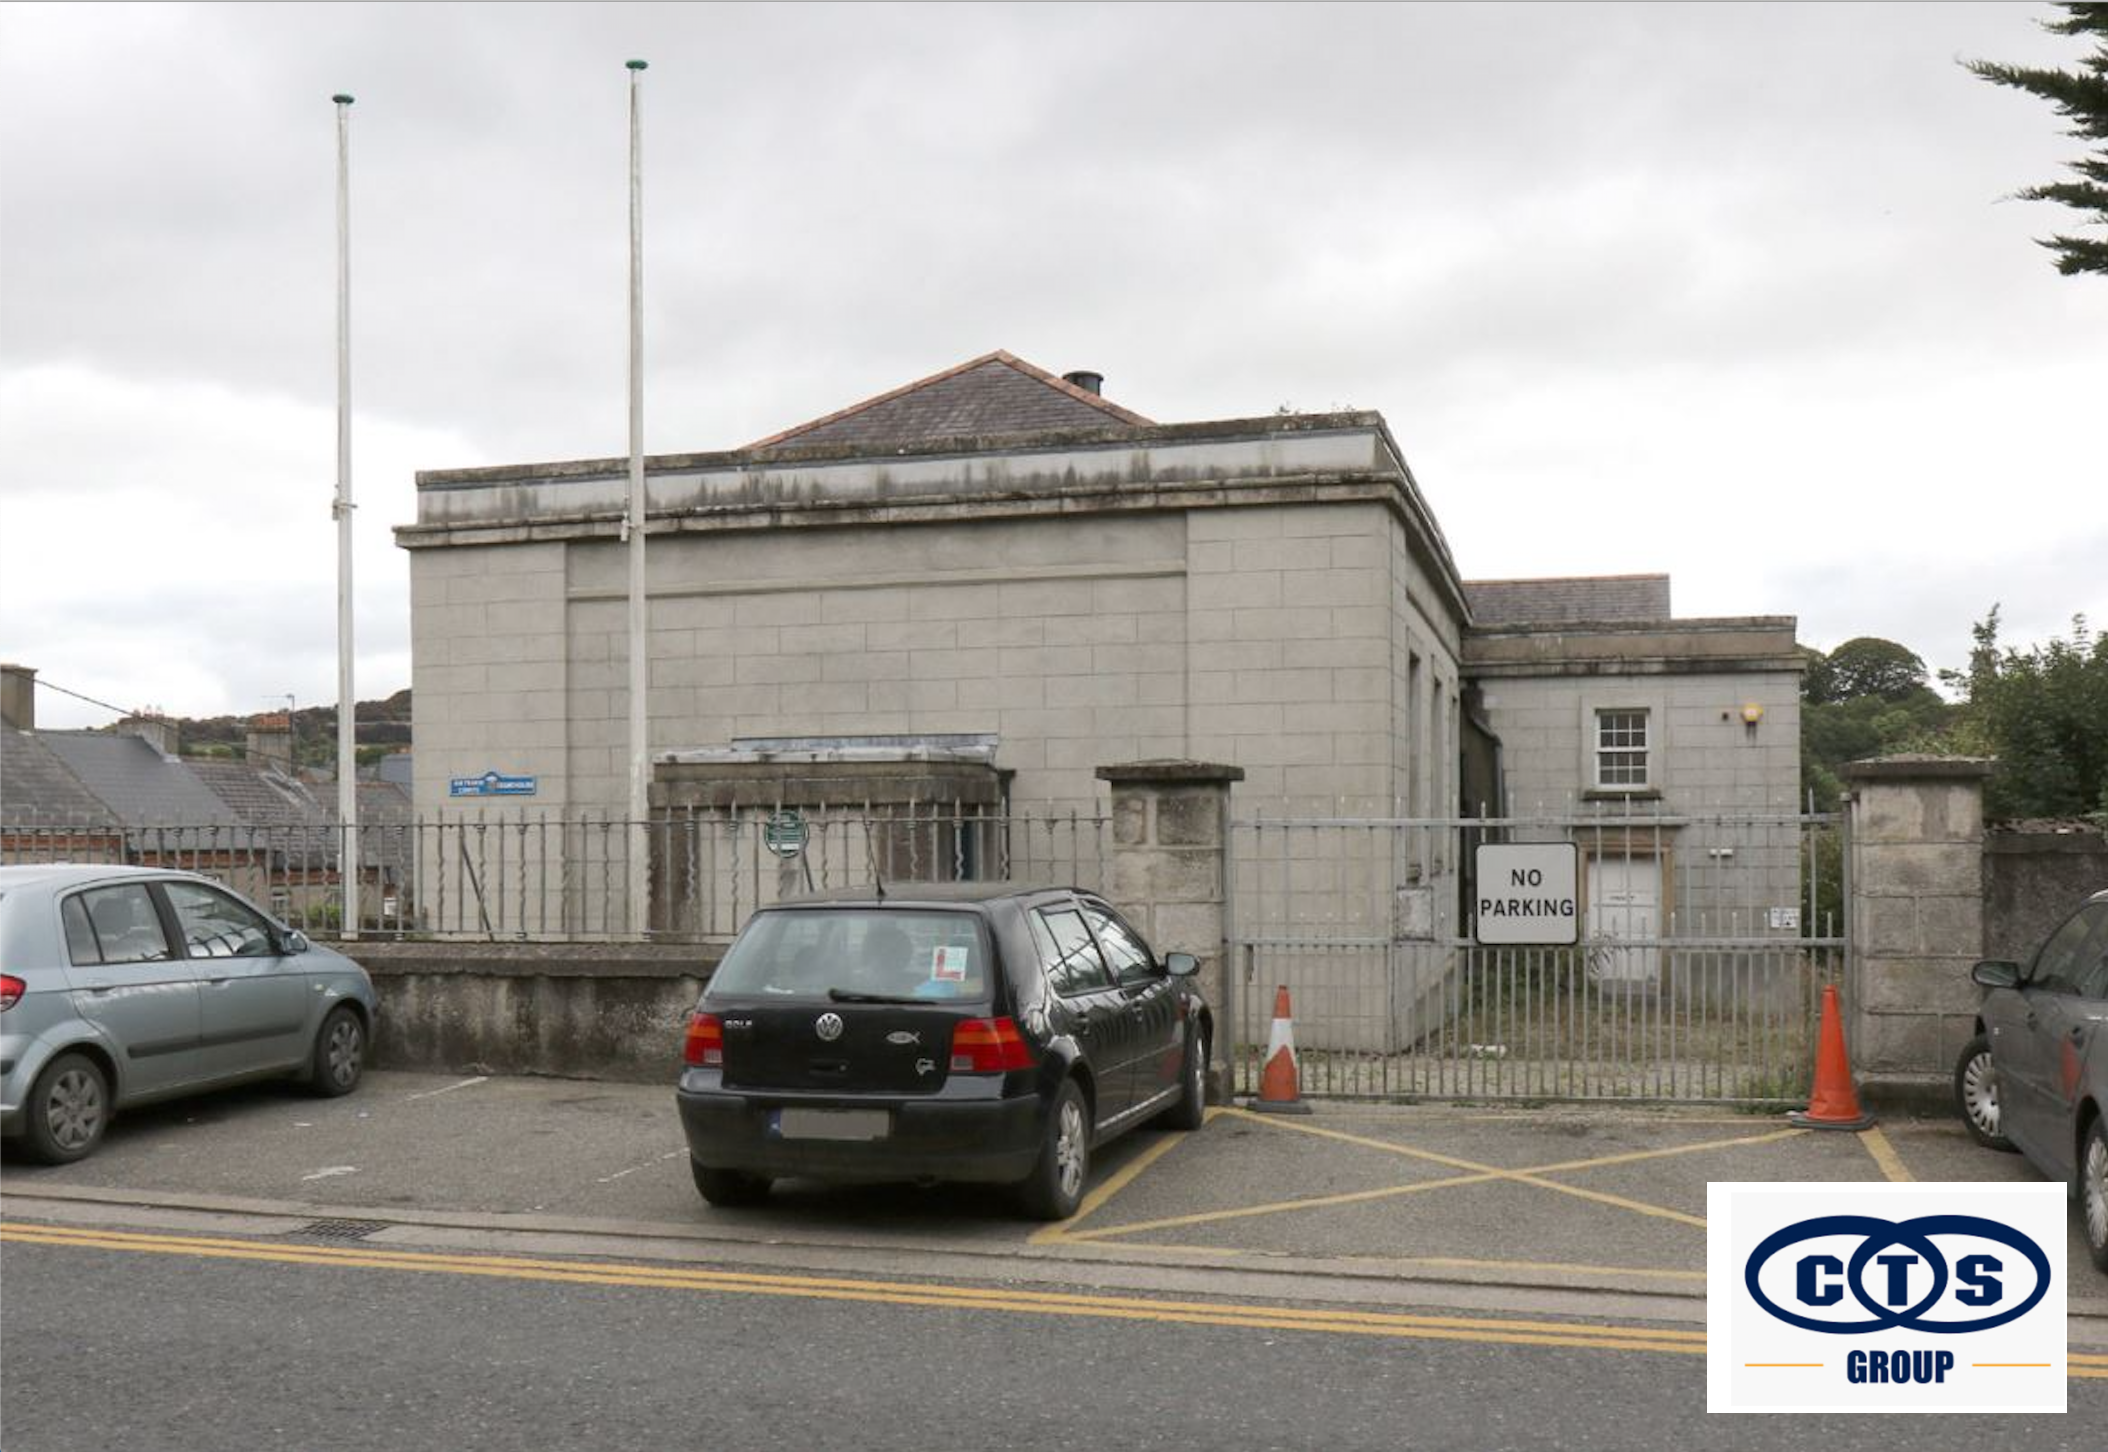 Enniscorthy Courthouse Mechanical Contract Awarded